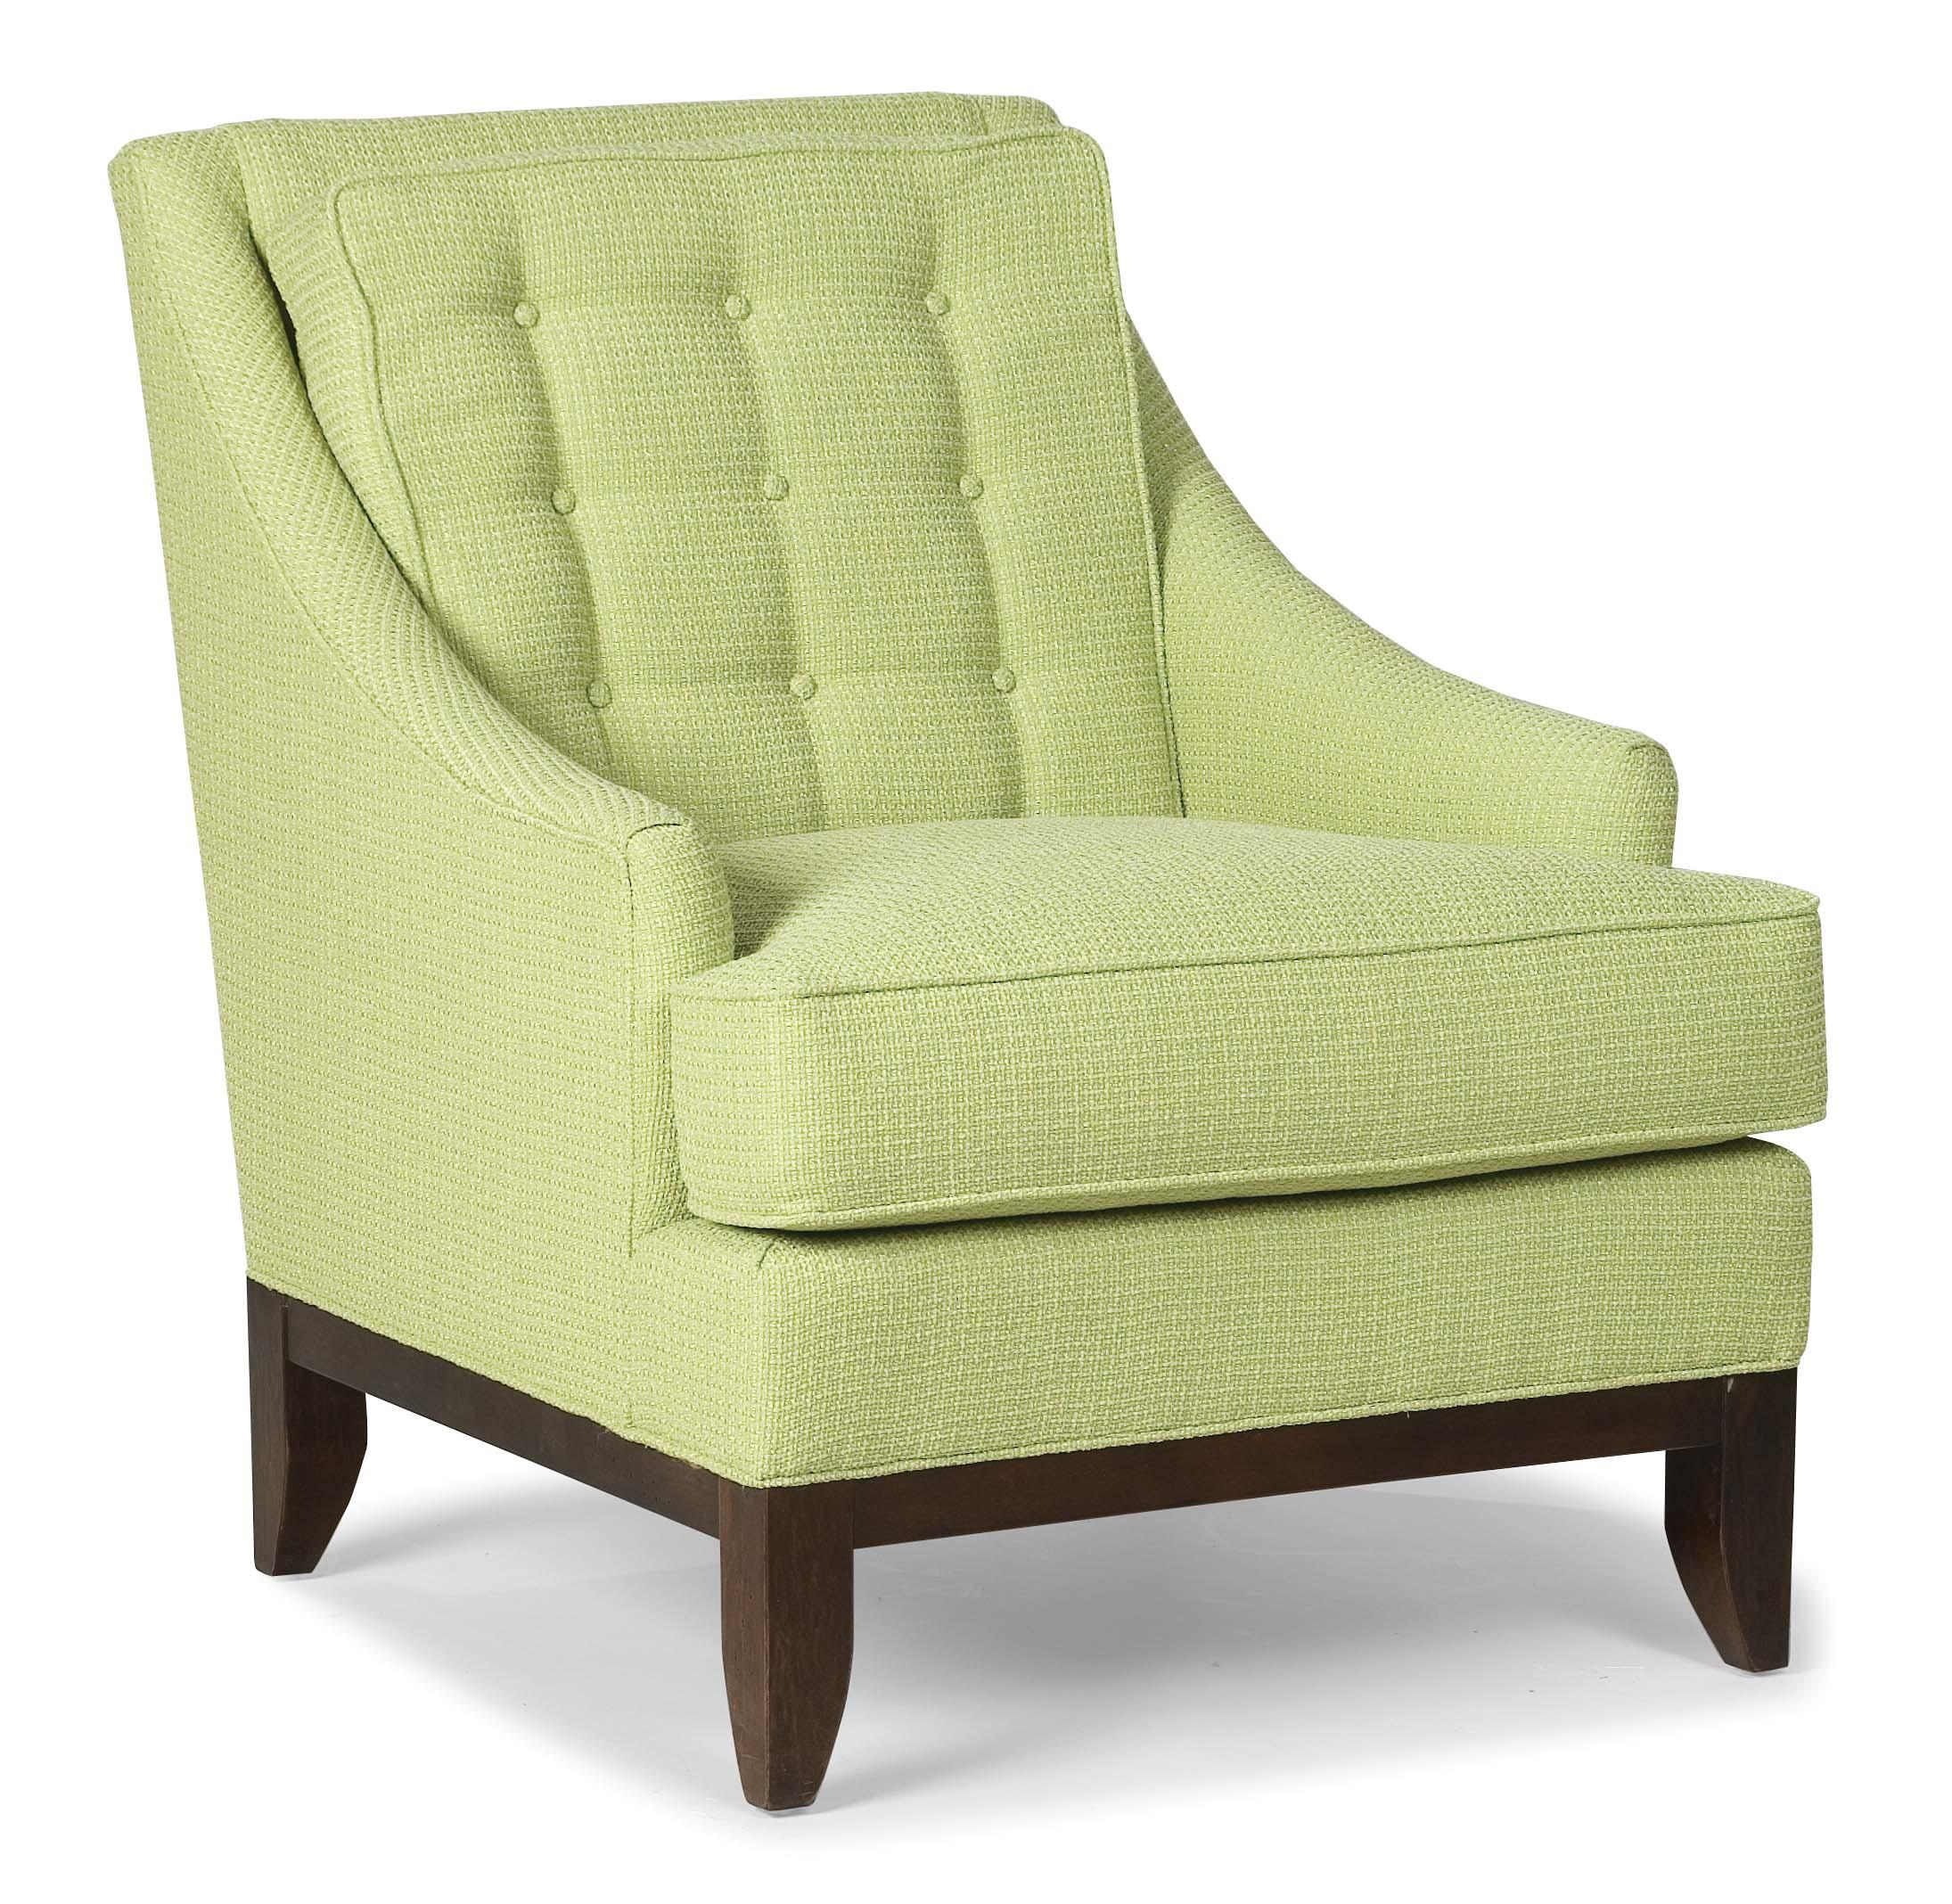 Fairfield Chairs Chairs Upholstered Accent Chair With Button Tufting By Fairfield At Howell Furniture